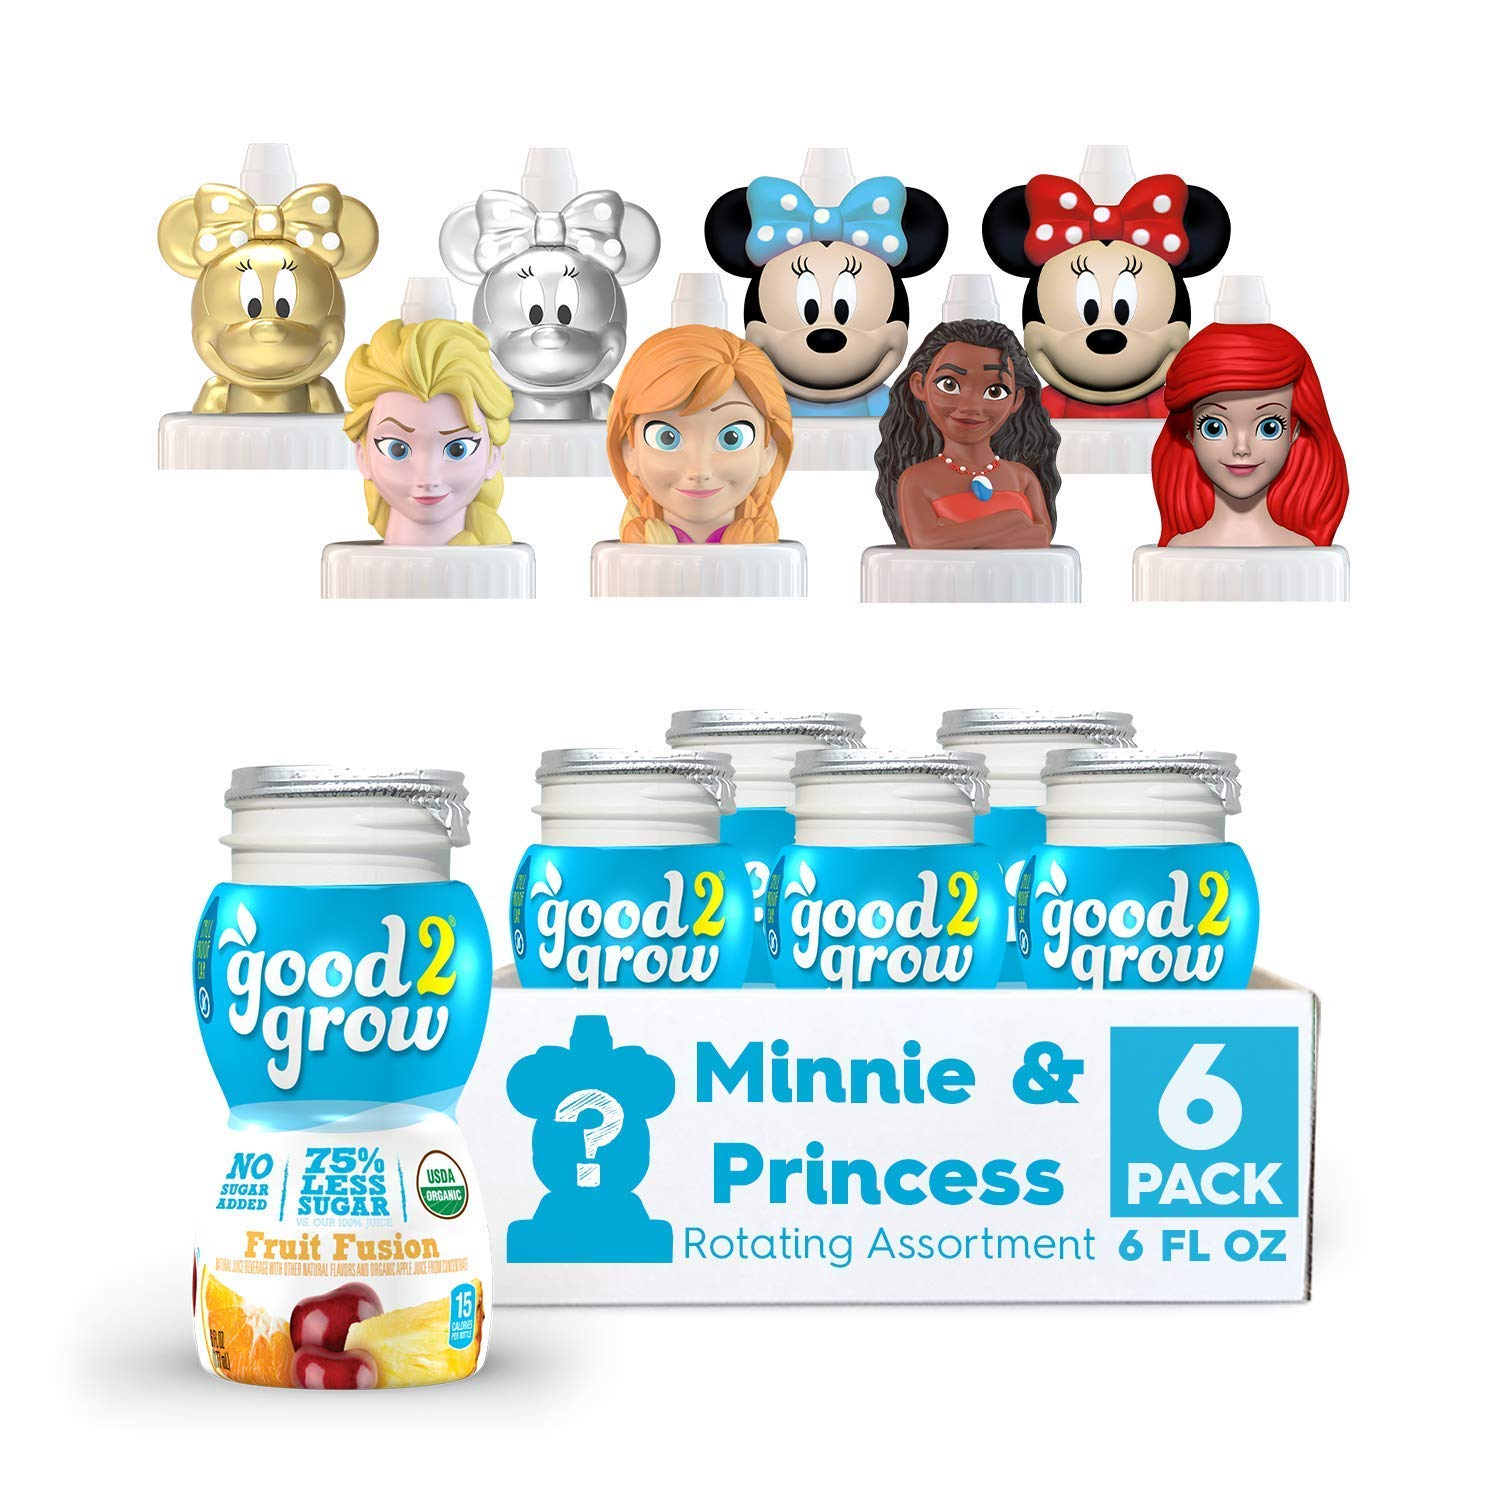 good2grow Organic Minnie and Disney Princess Collector 6pk Low Sugar Fruit Fusion Juice, 6oz-Spill-proof Character Top Bottles, USDA Organic, Non-GMO, No Sugar Added Character Tops May Vary